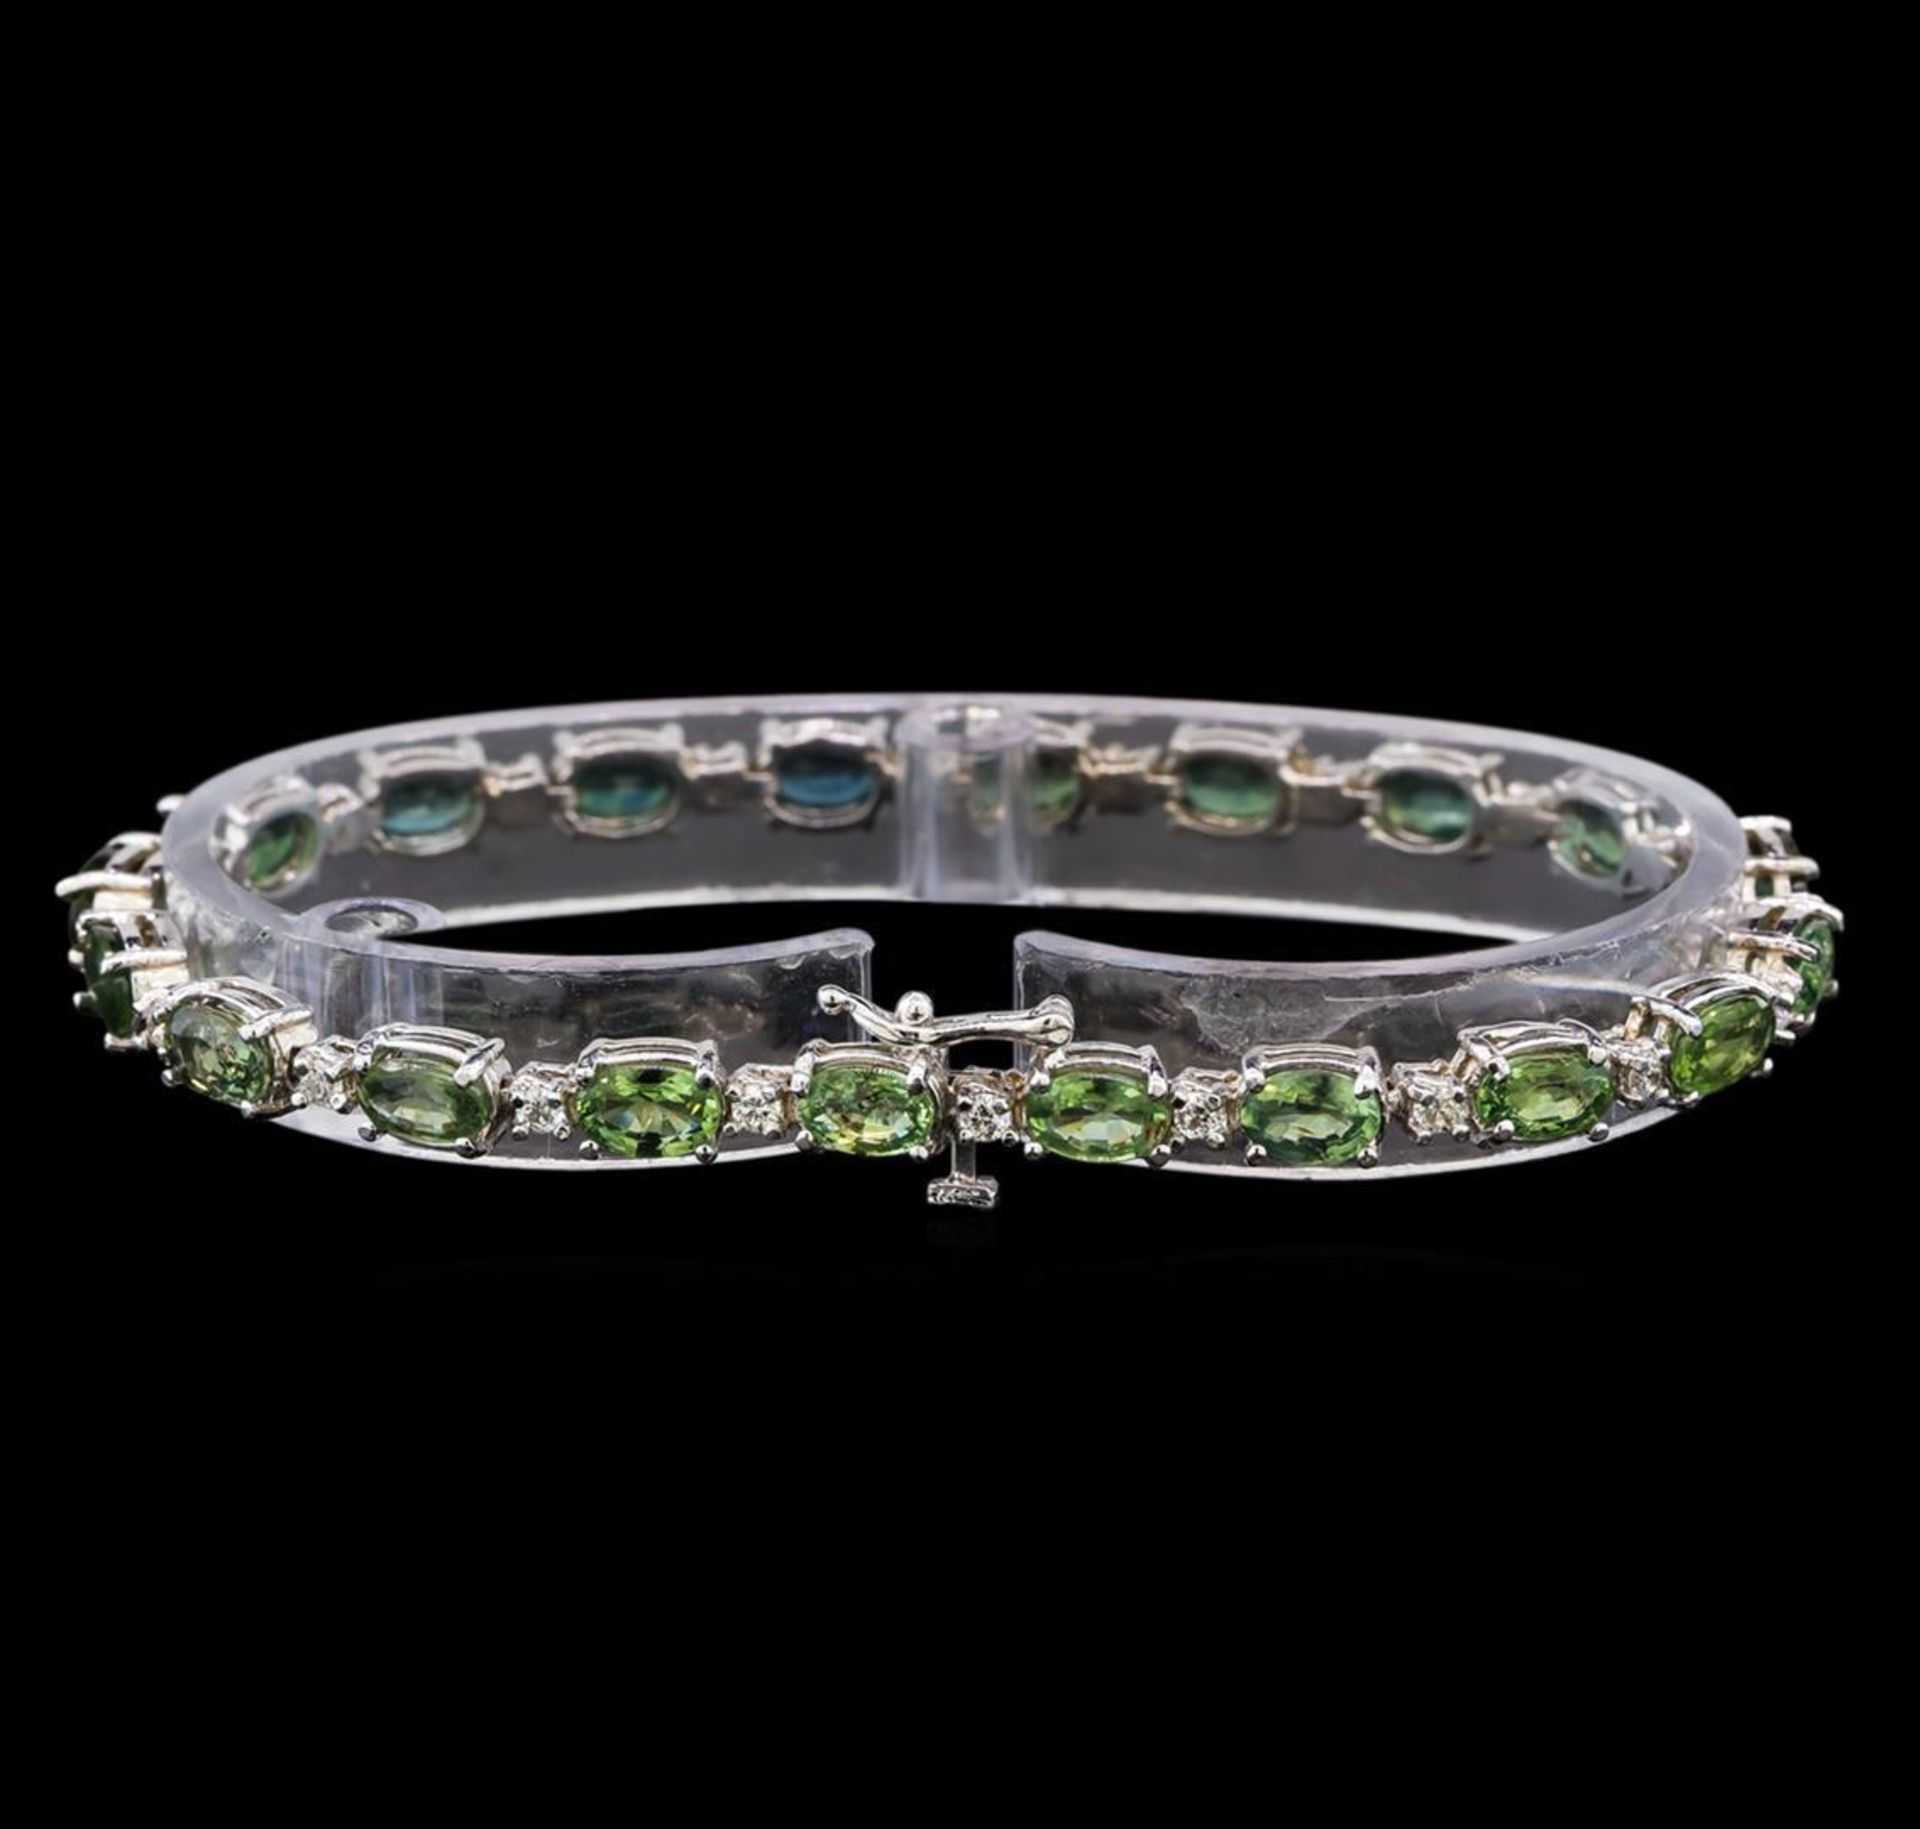 14KT White Gold 11.20 ctw Green Sapphire and Diamond Bracelet - Image 2 of 4